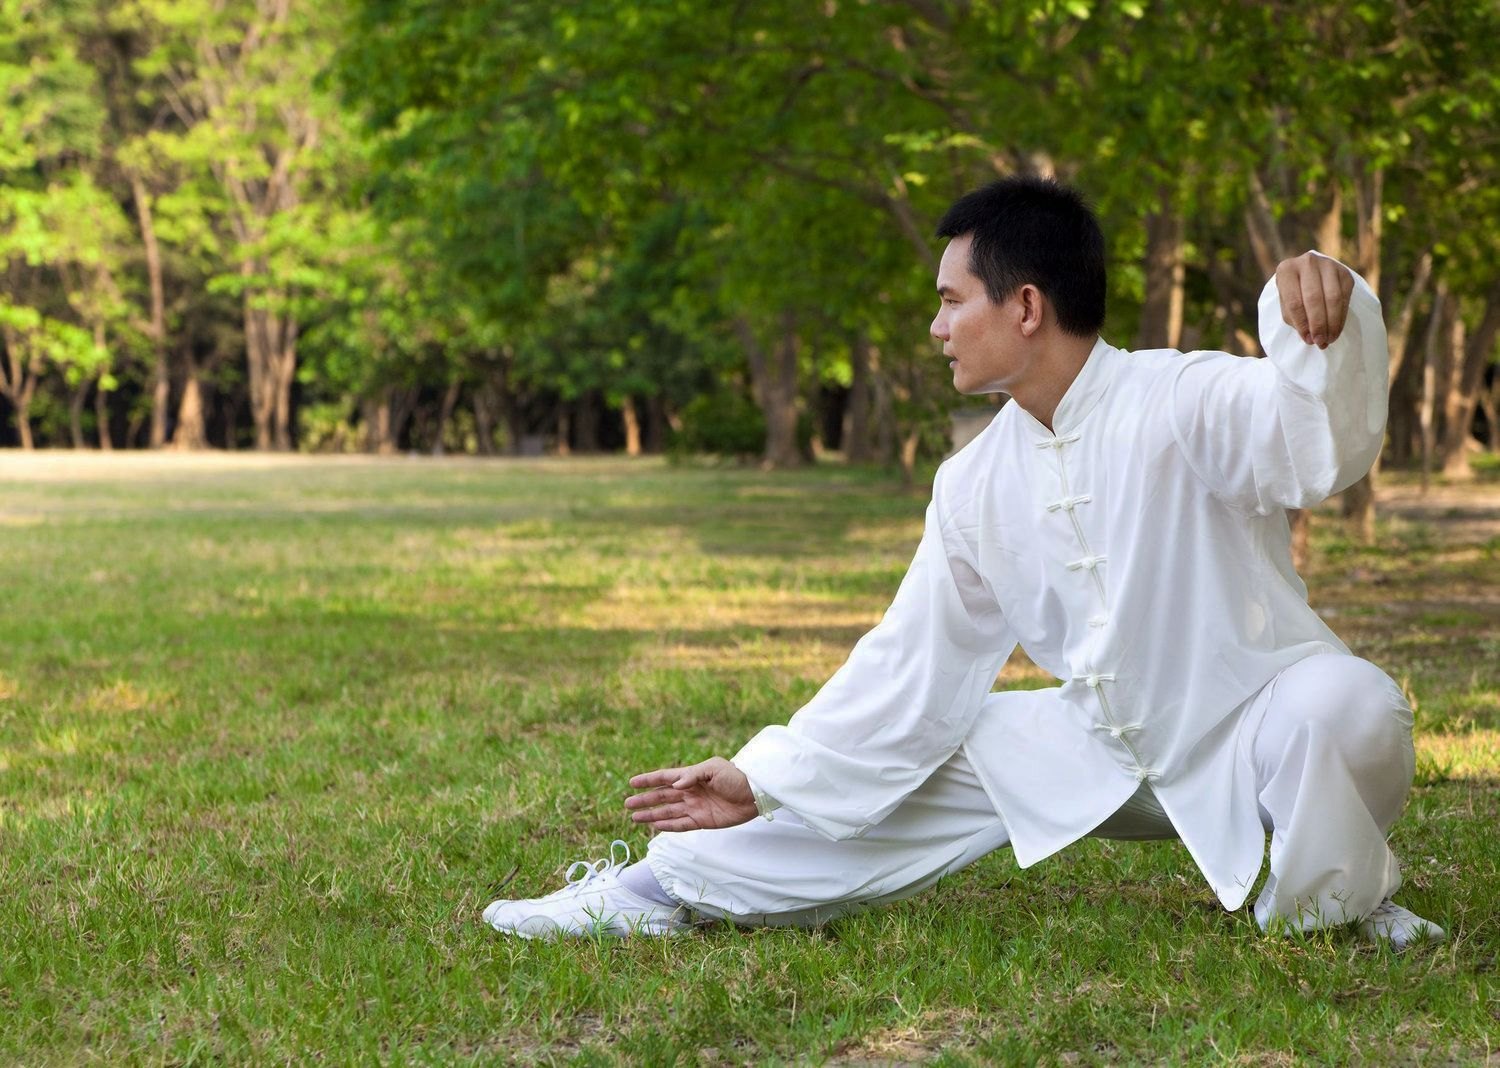 Some forms of martial arts, such as #taichi, place great emphasis on